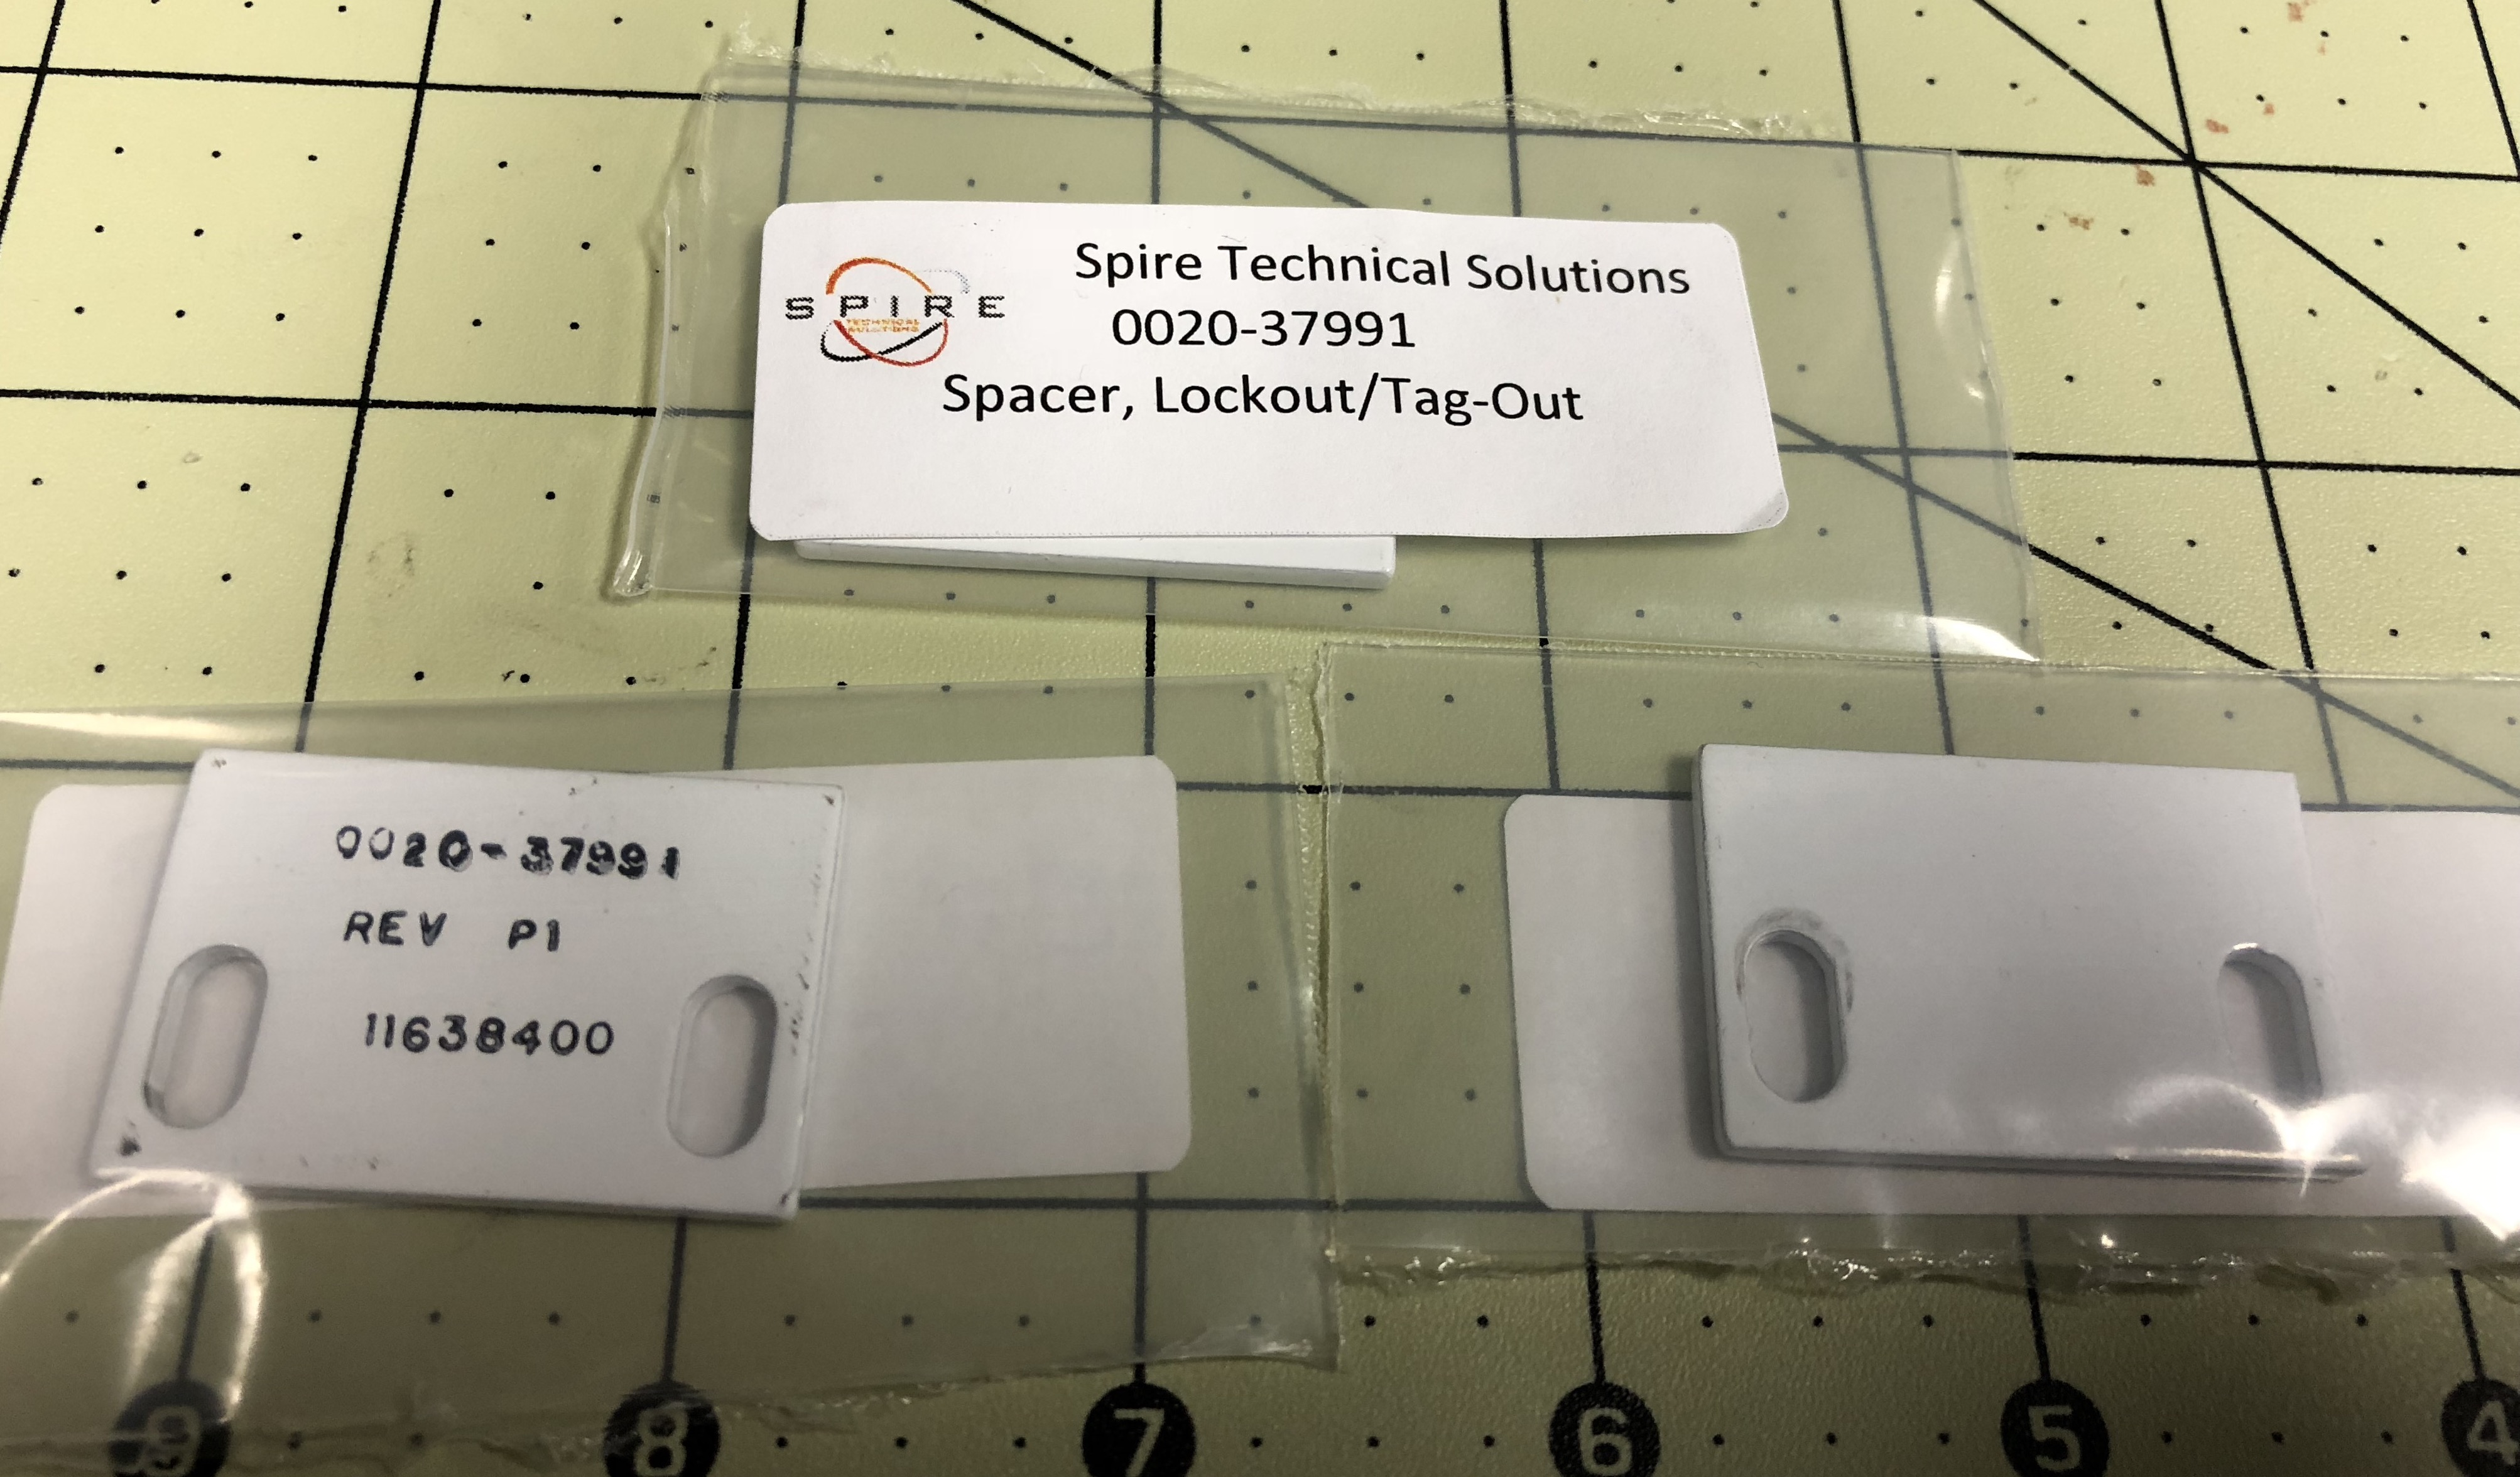 Spacer, Lockout/Tag-out